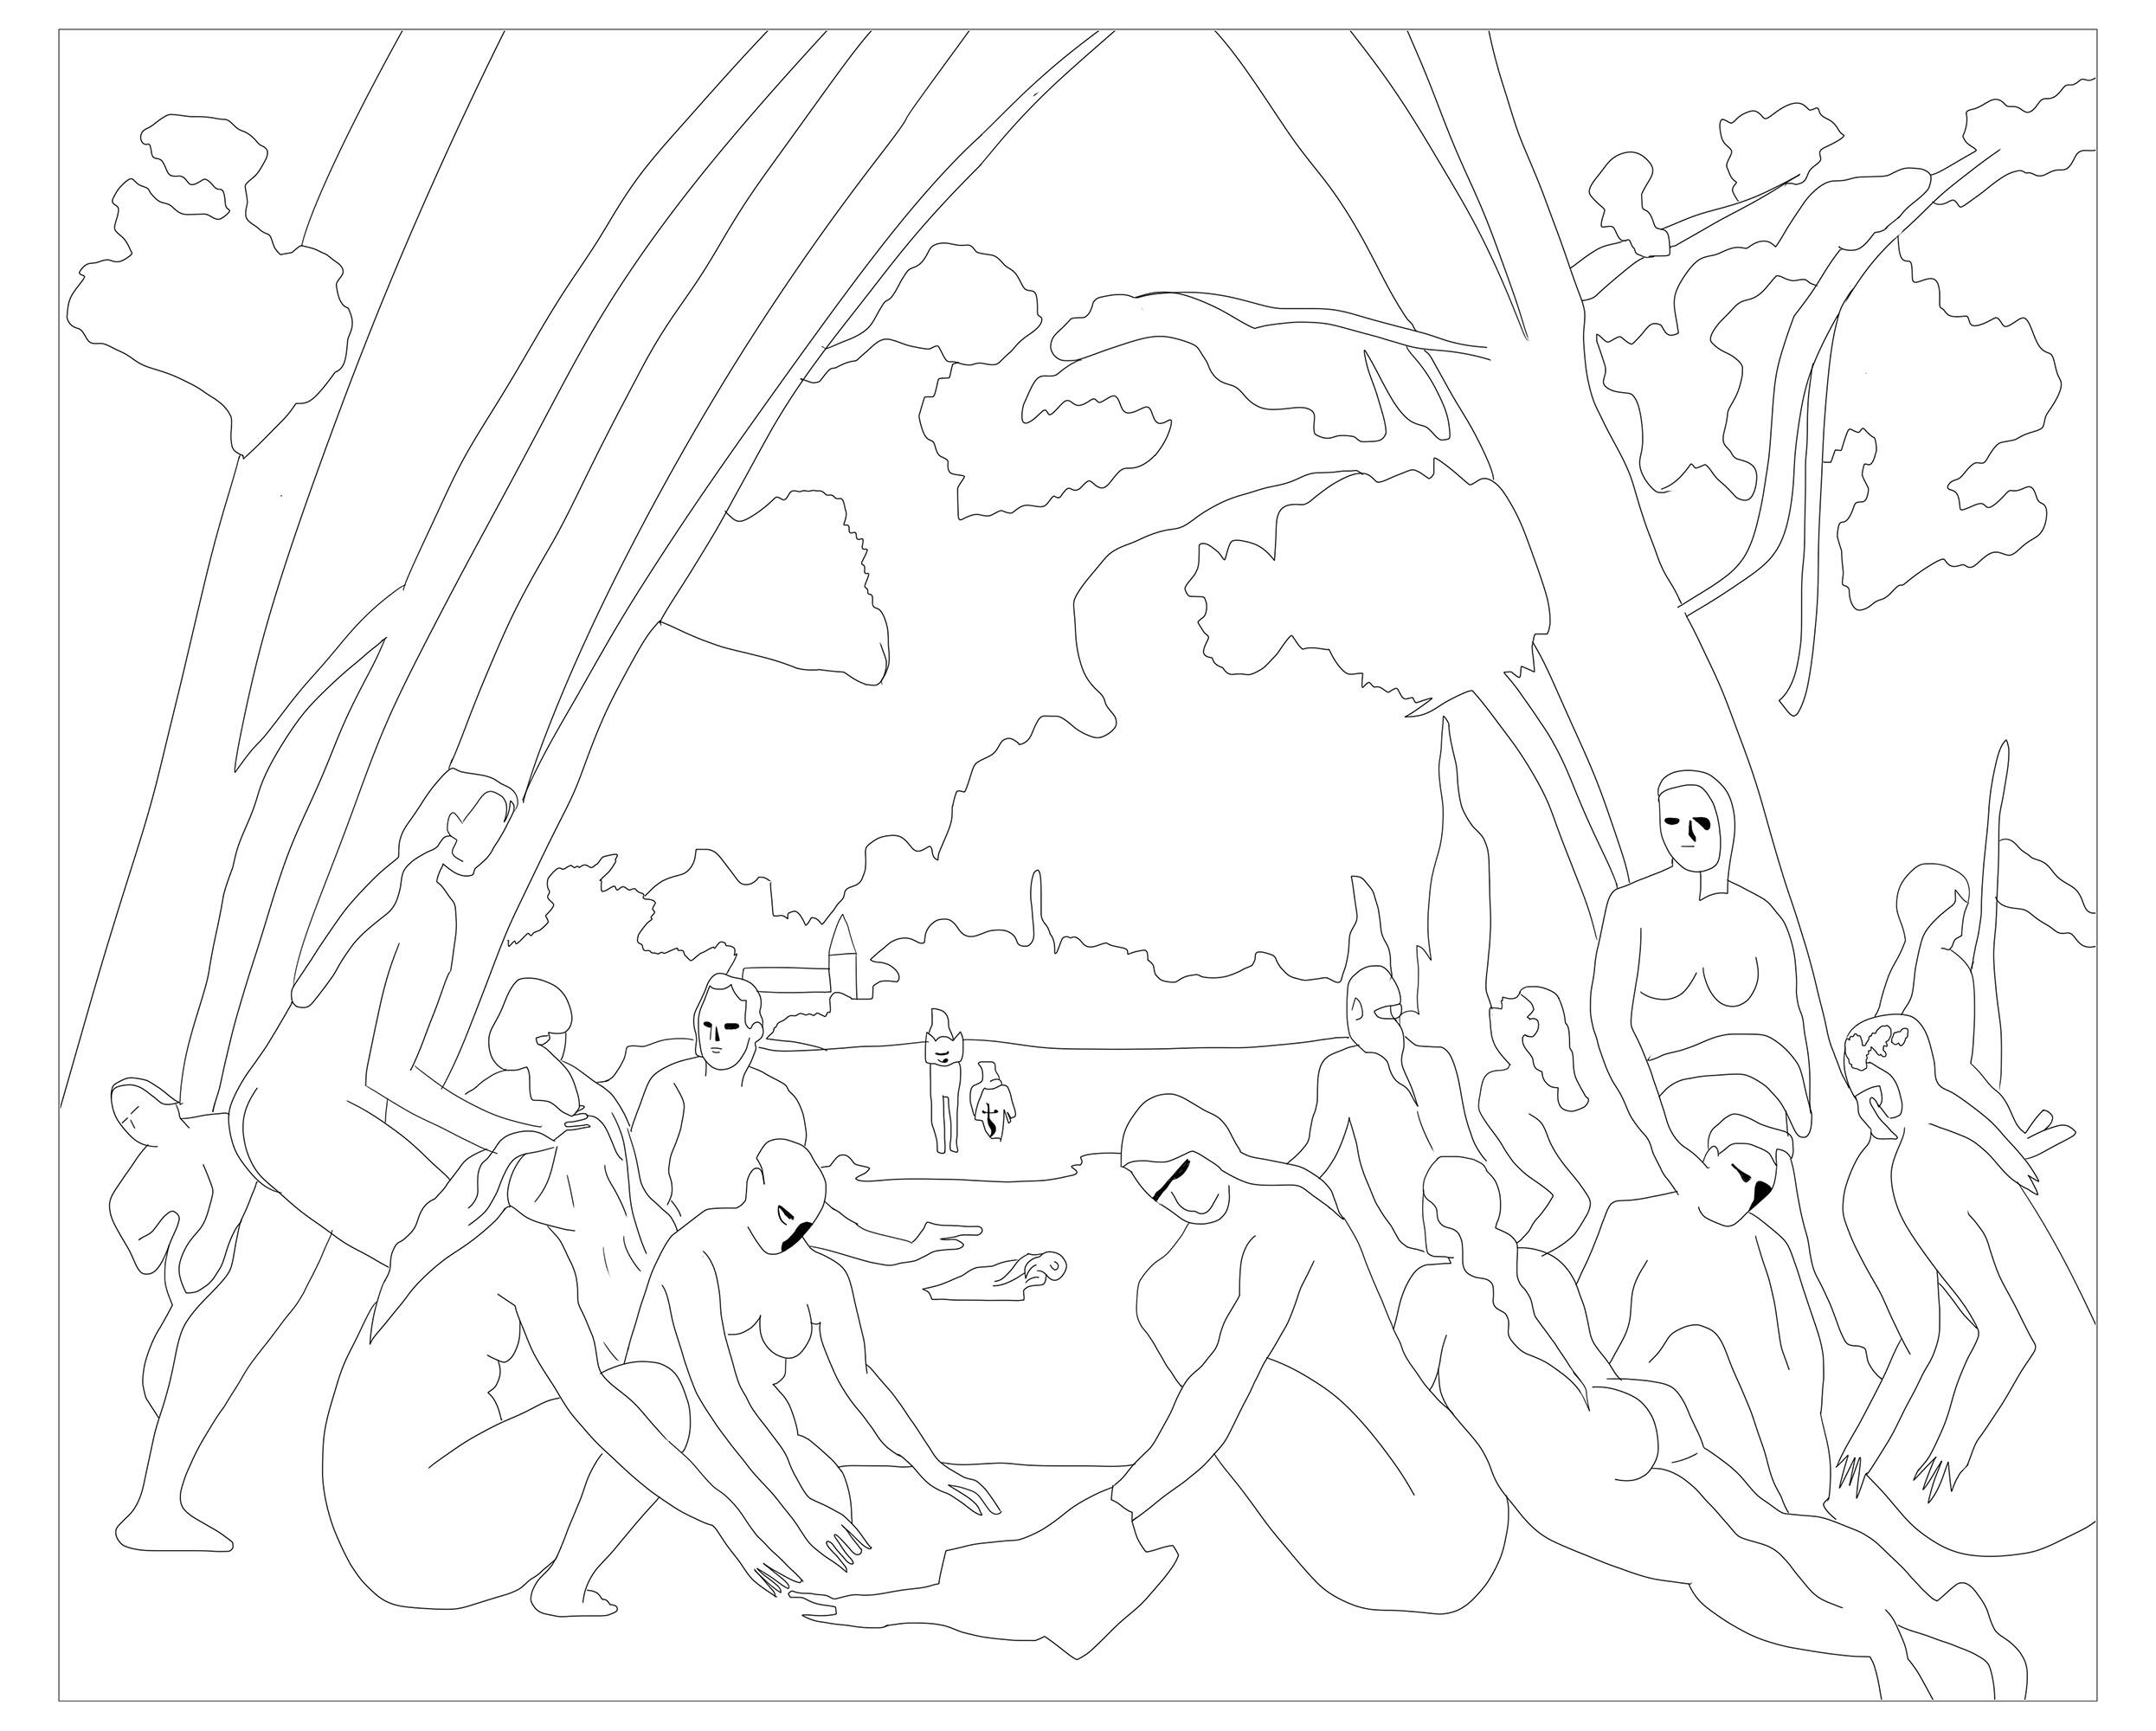 Coloring page inspired by 'Les Grandes Baigneuses' by Paul Cezanne